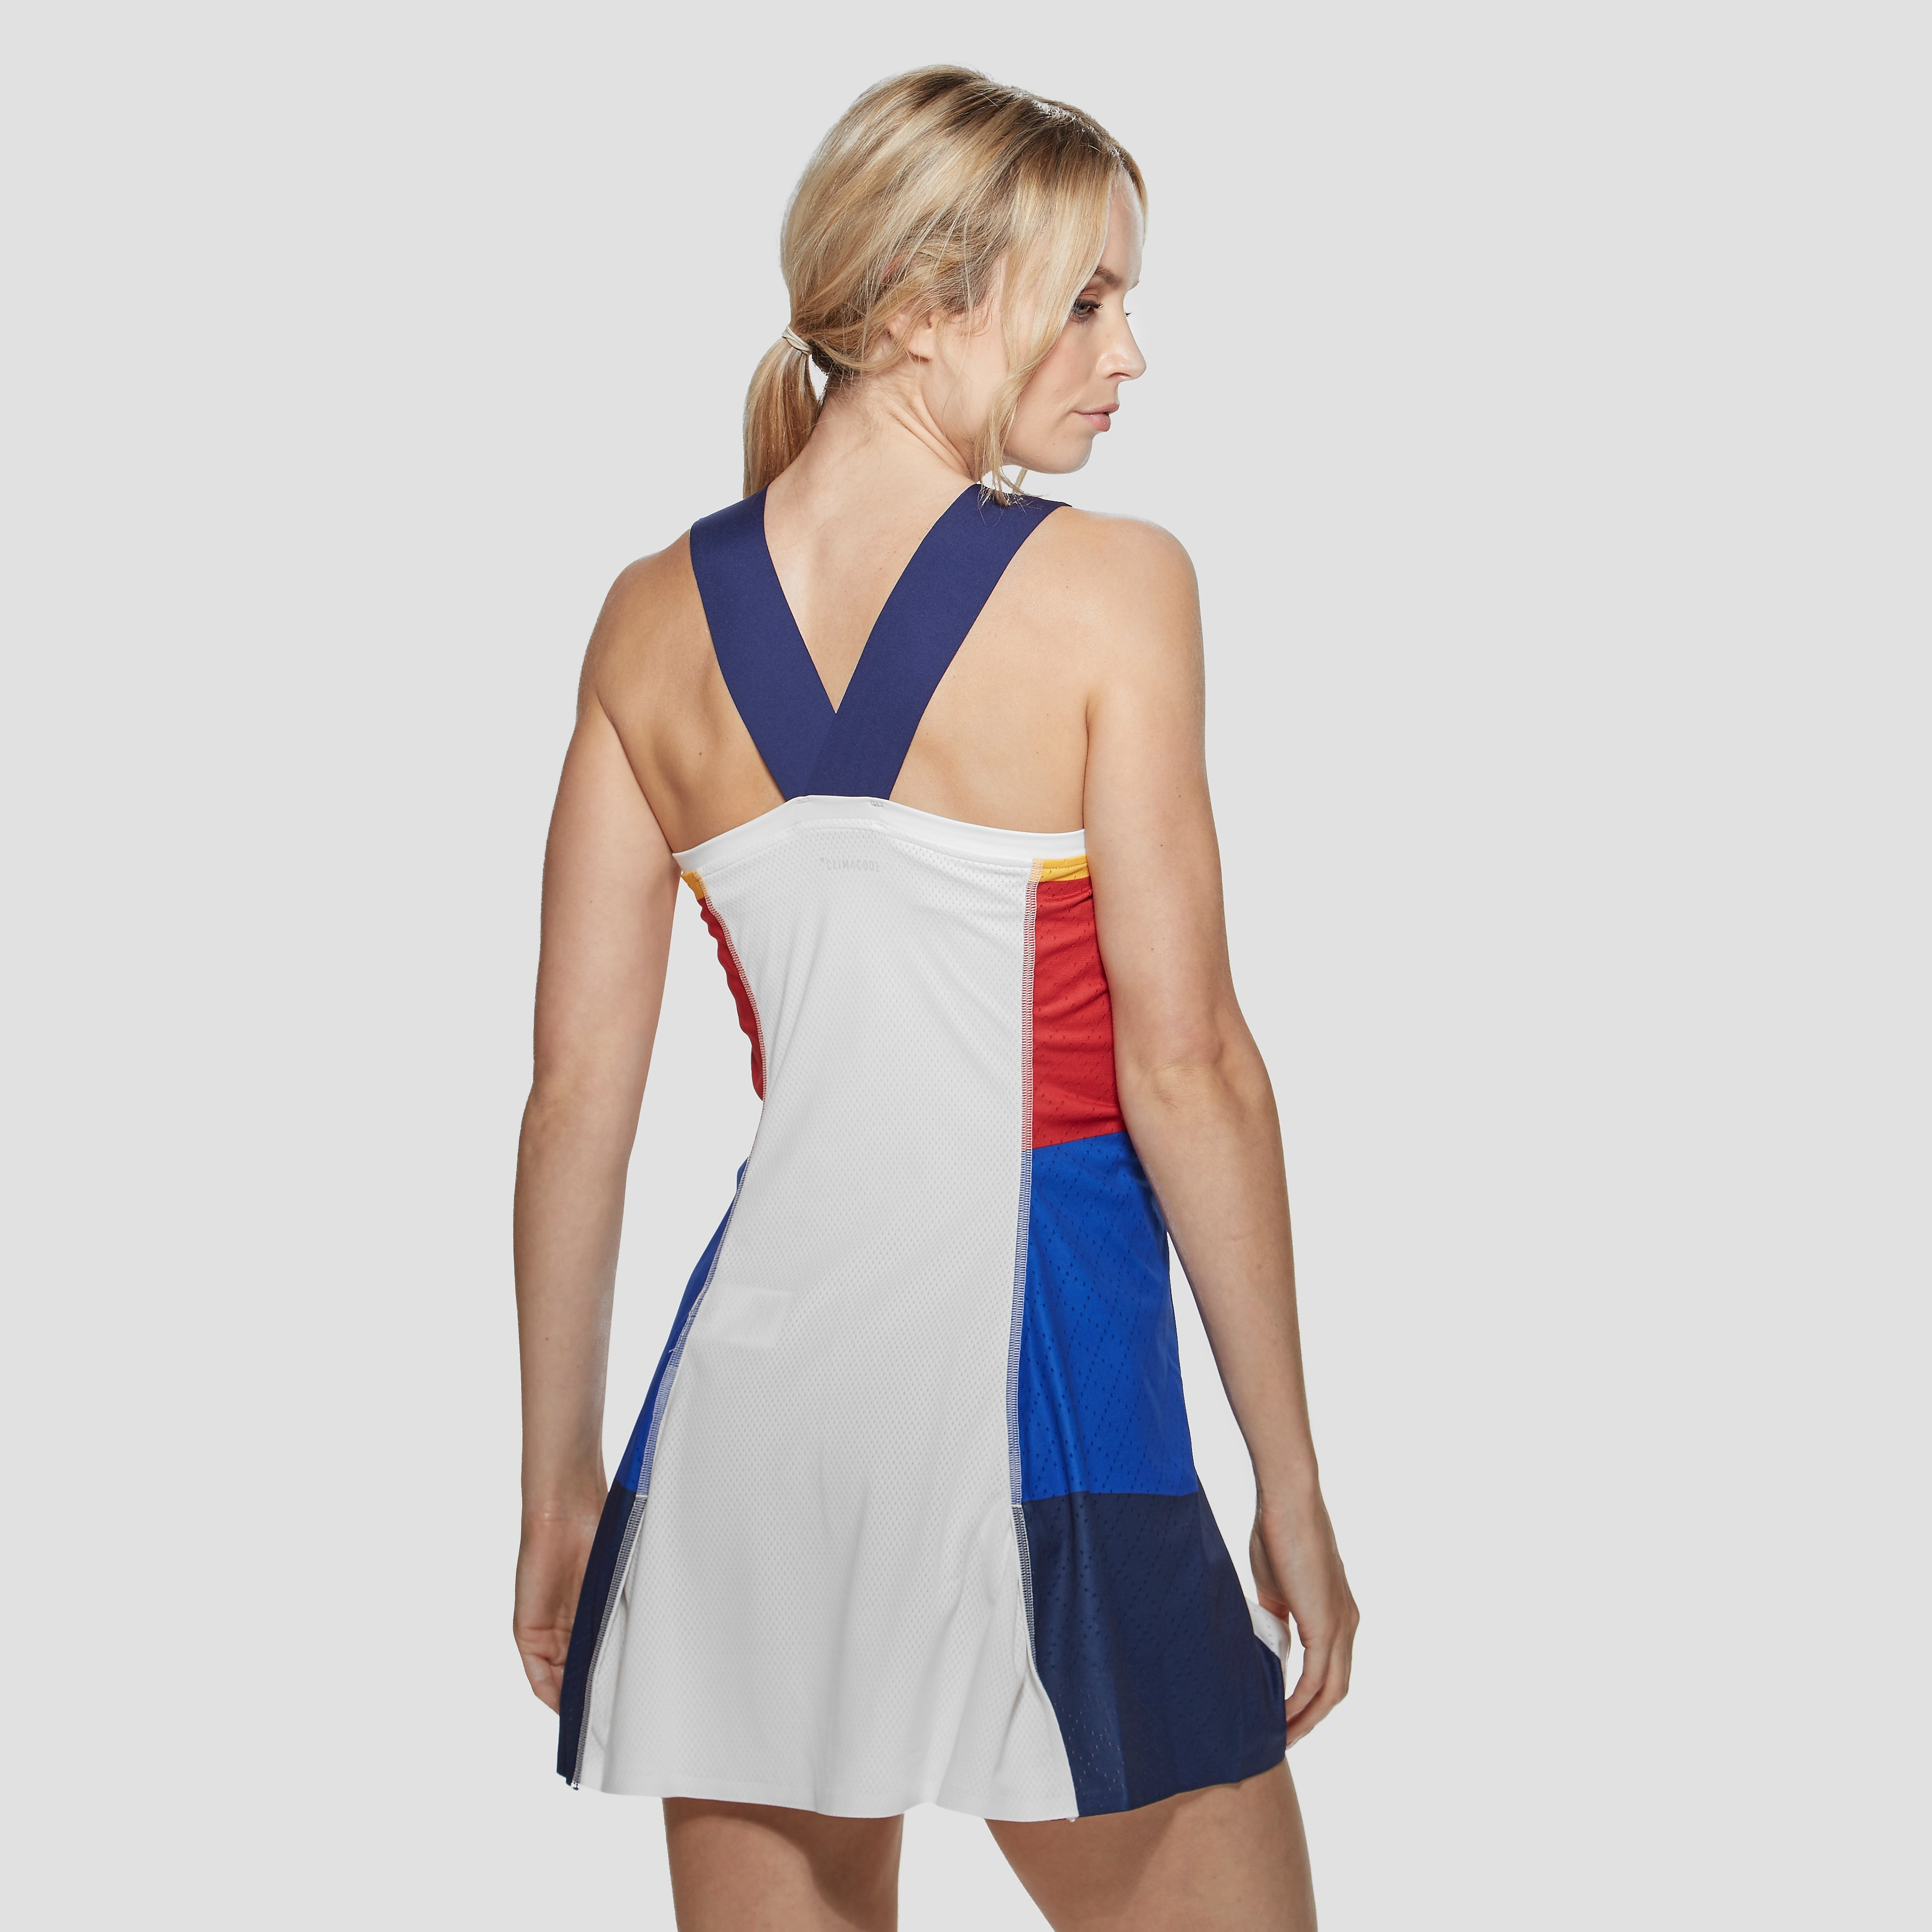 adidas Pharrell Williams New York V-neck tennis dress